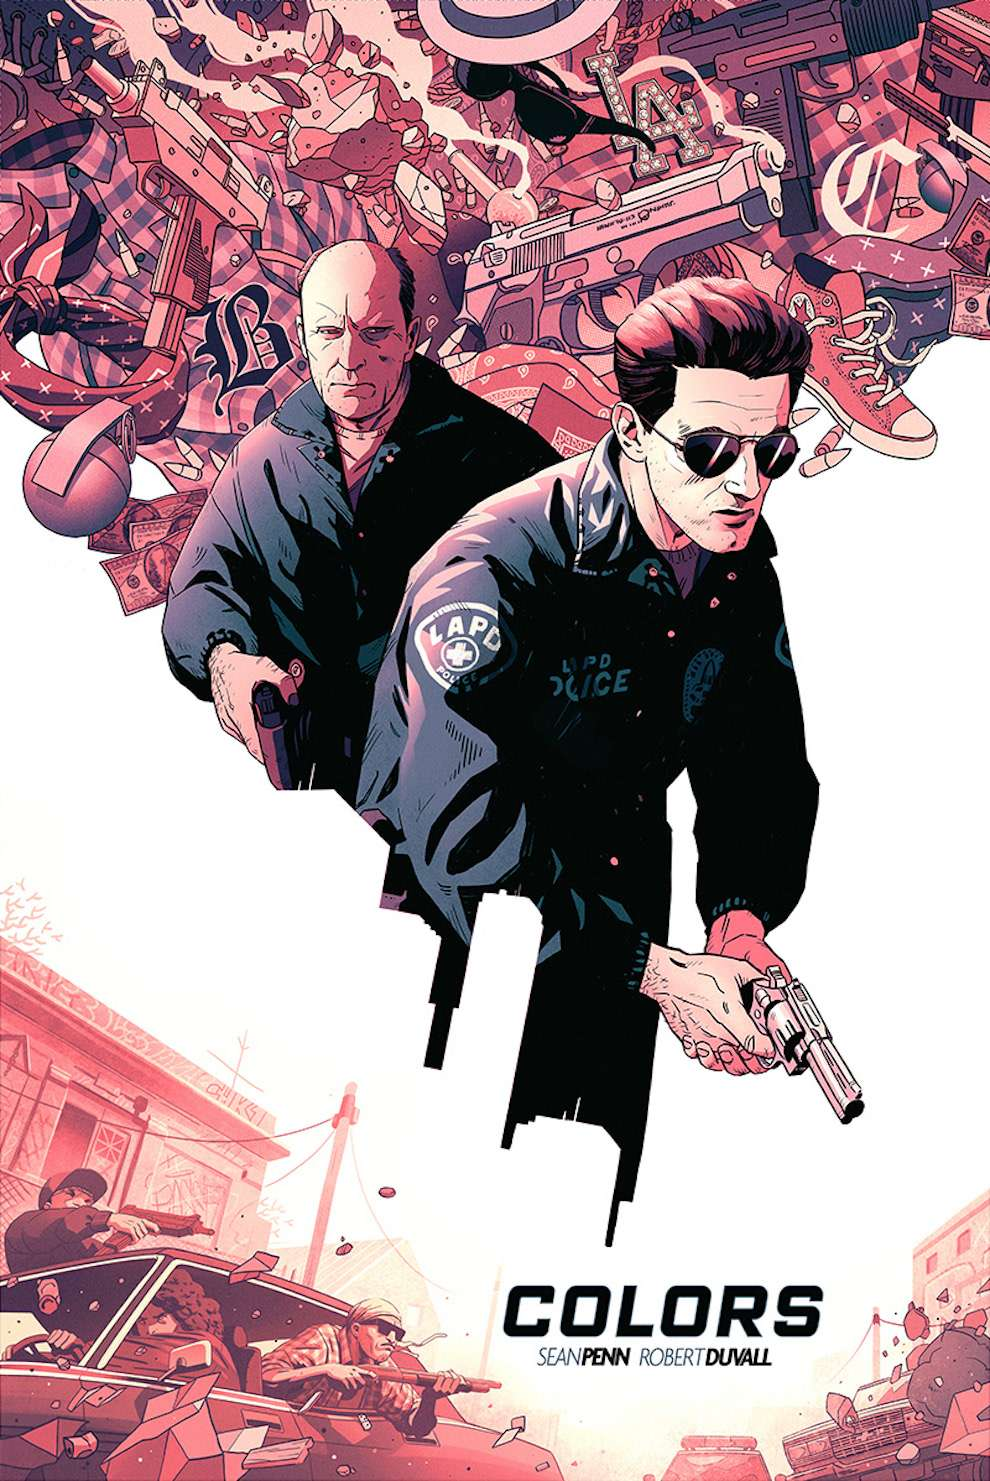 Coke Navarro, Conceptual poster art illustration for a game. Two policemen surrounded by gangster shooting out their car window